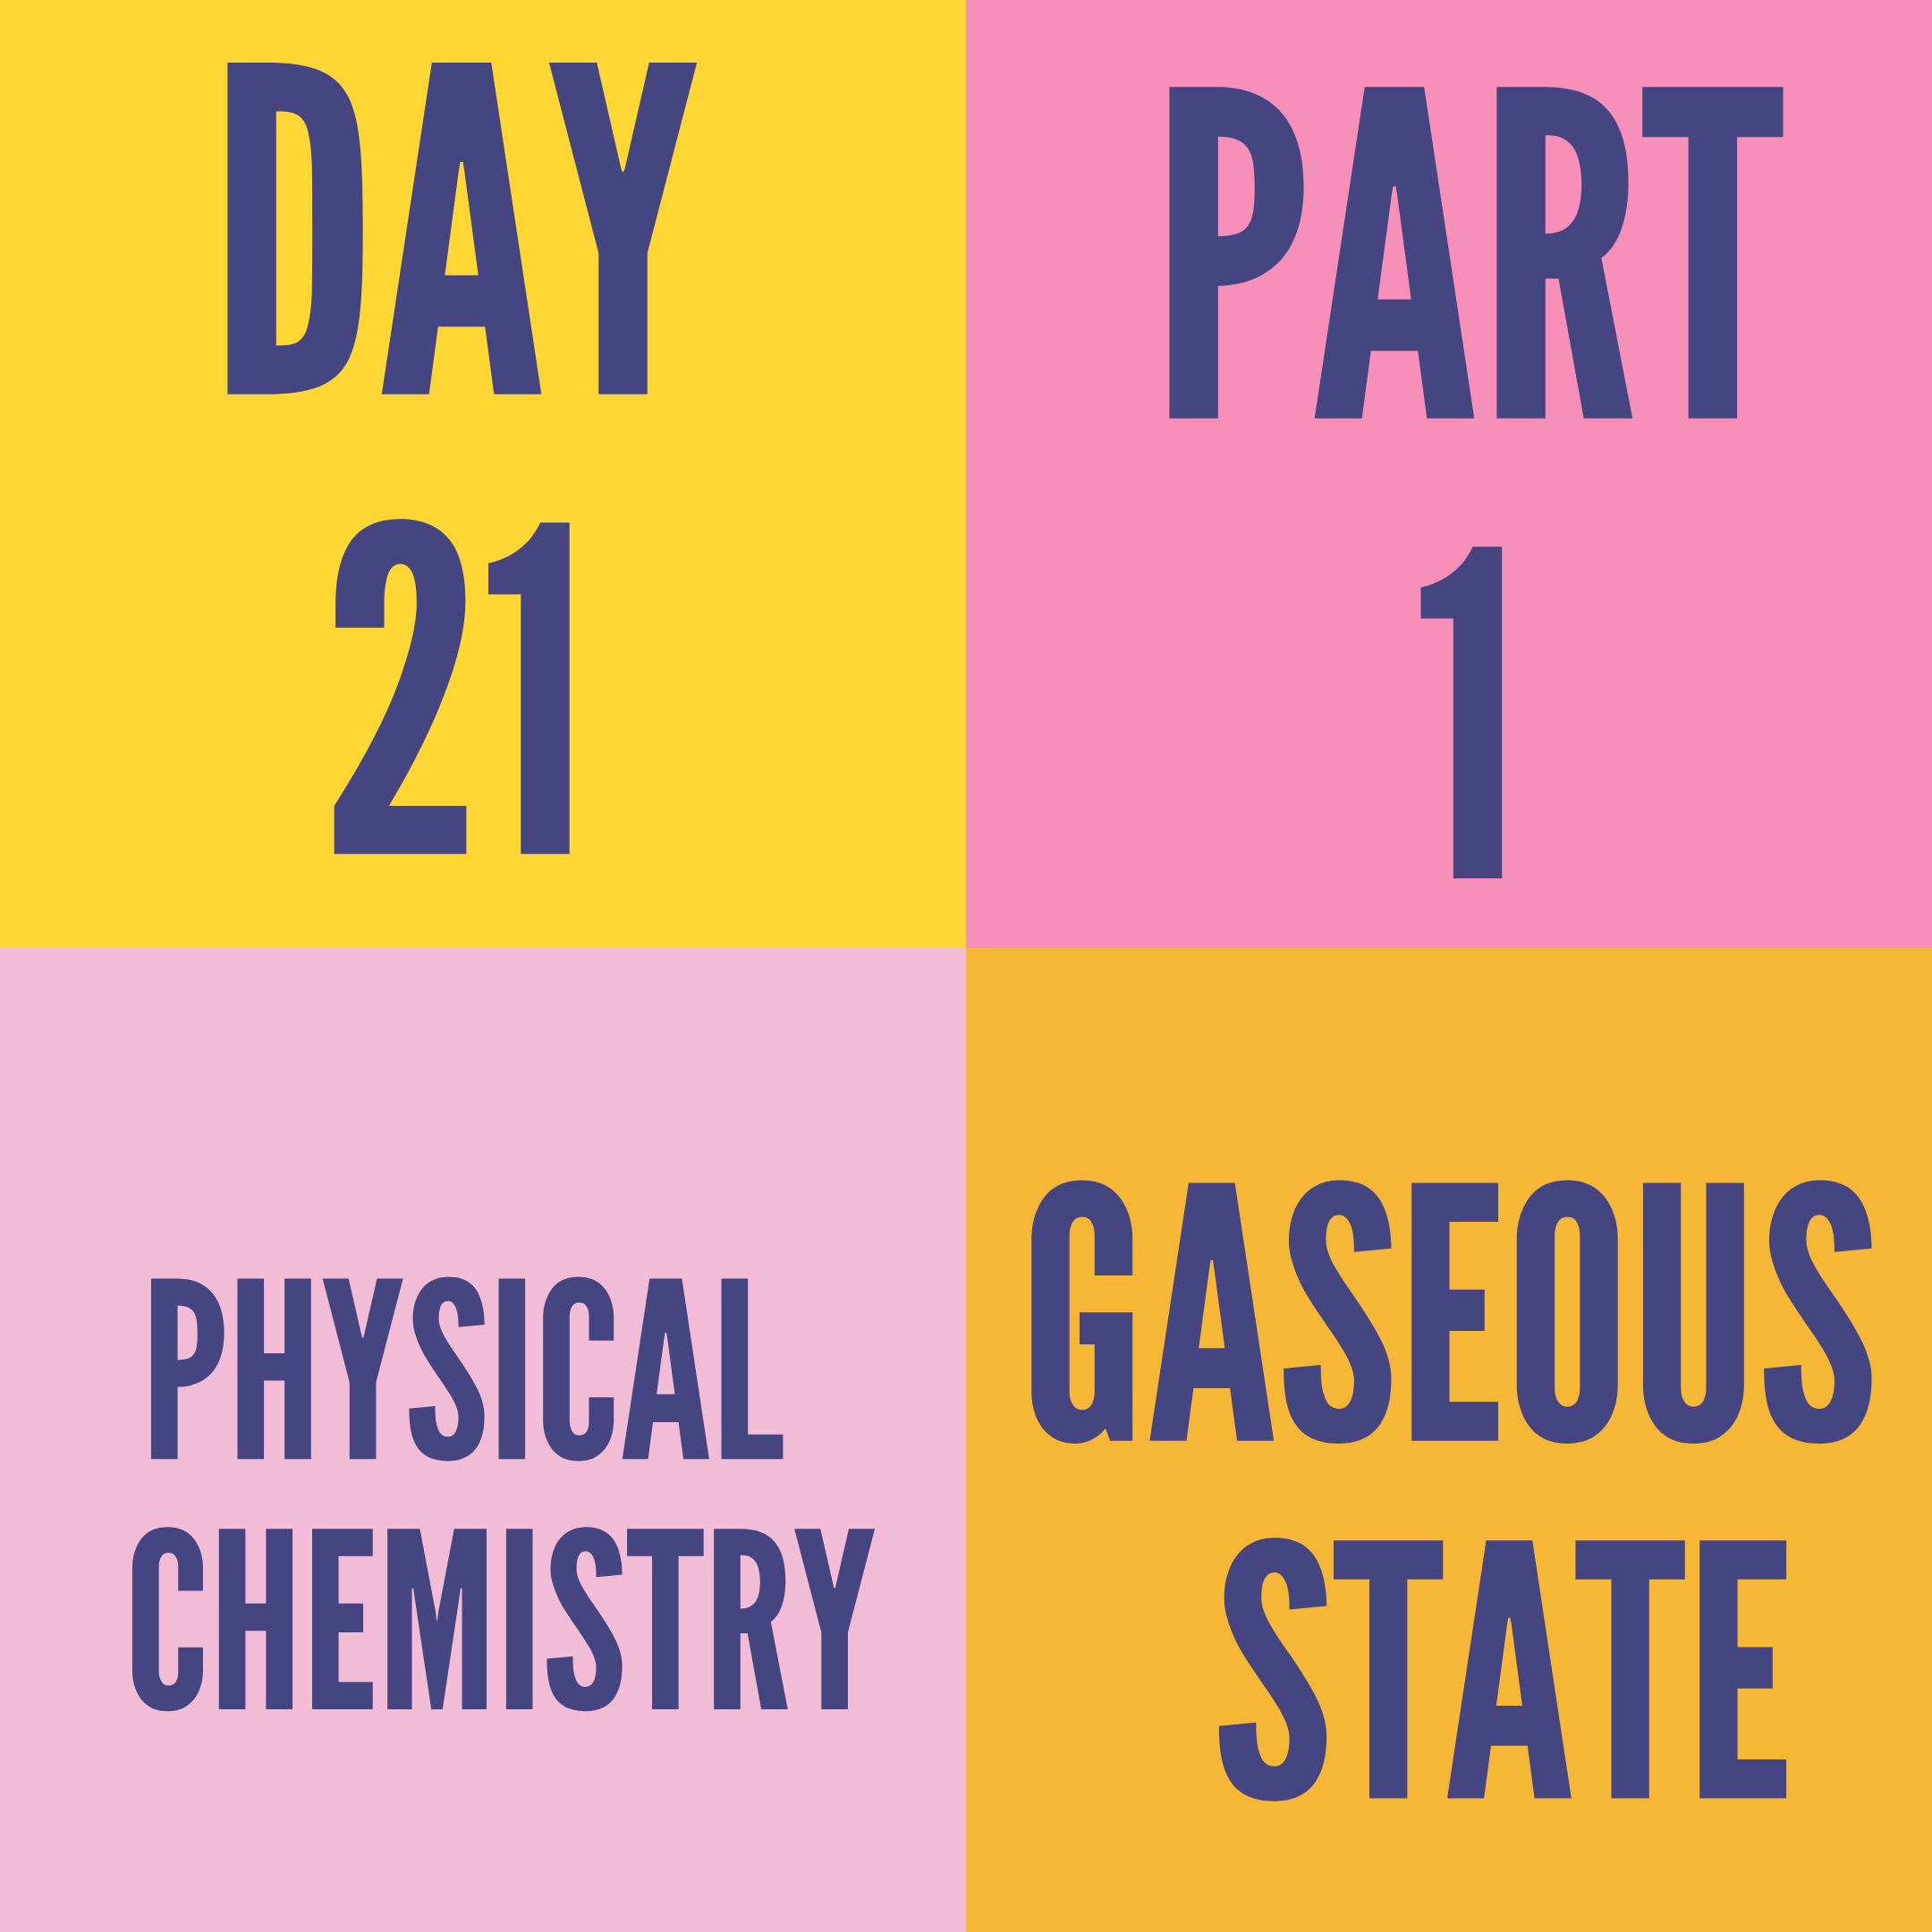 DAY-21 PART-1 GASEOUS STATE